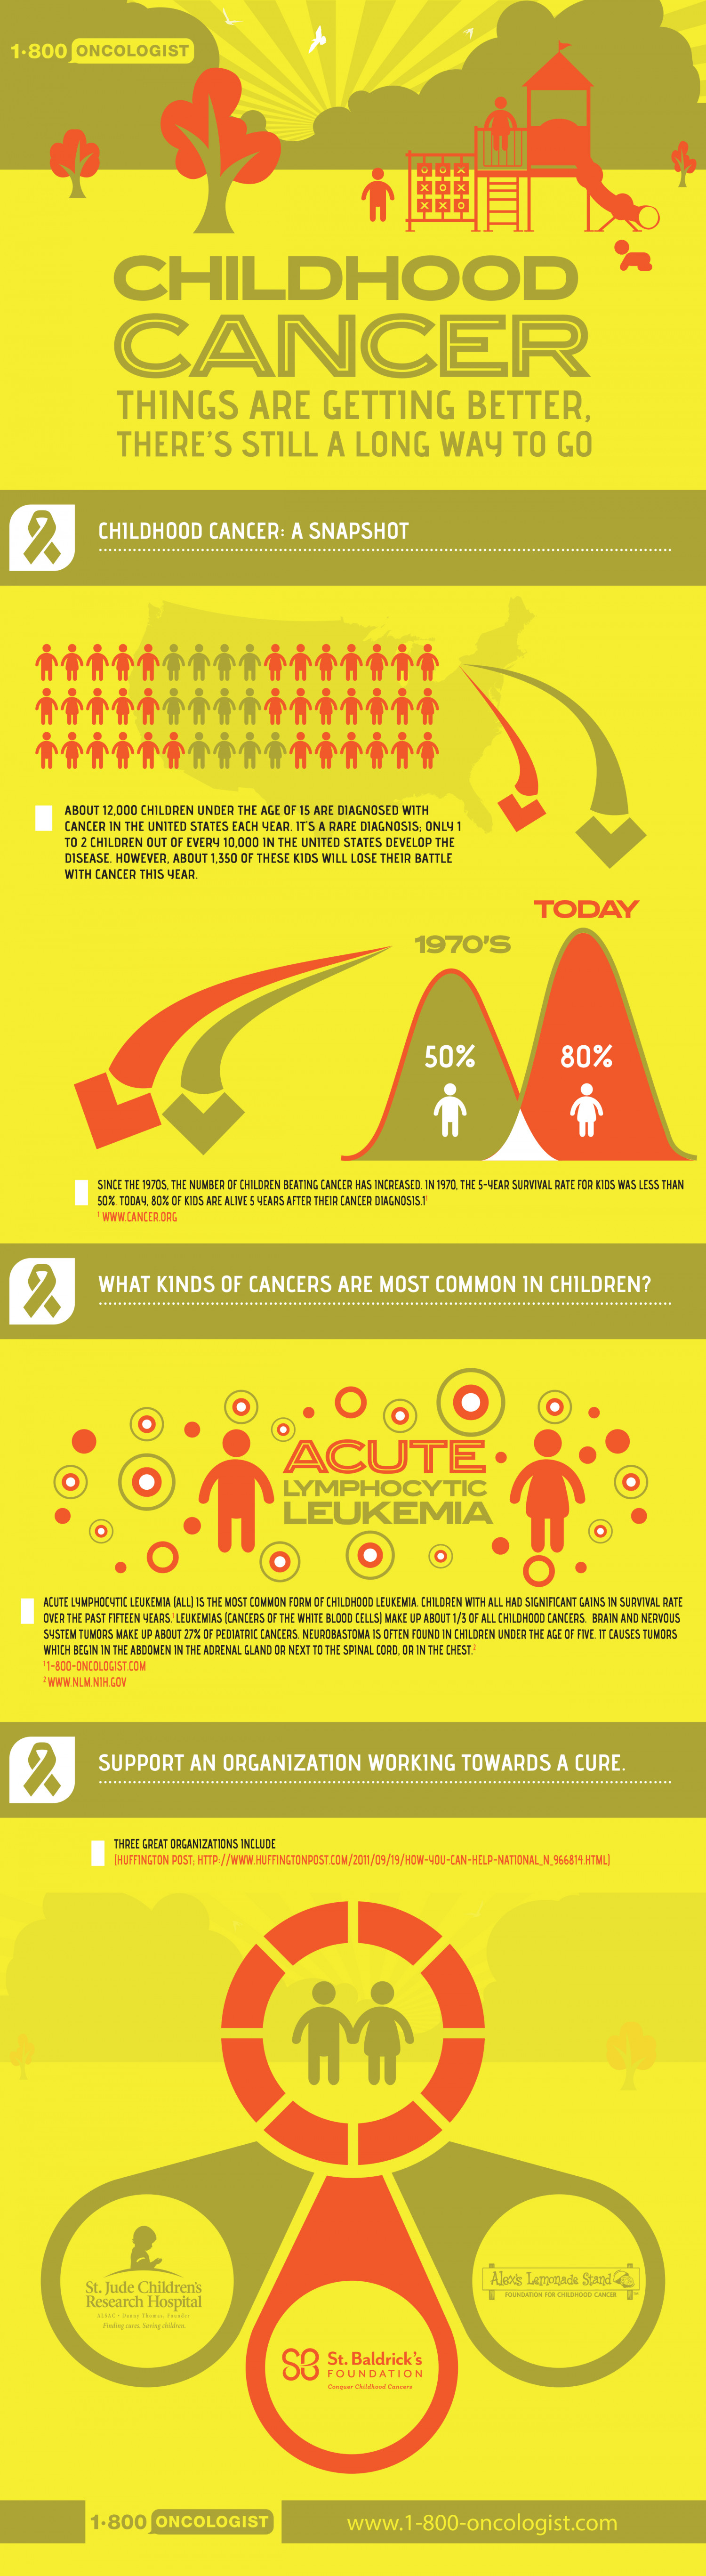 Childhood Cancer: Things Are Getting Better, There's Still A Long Way To Go Infographic